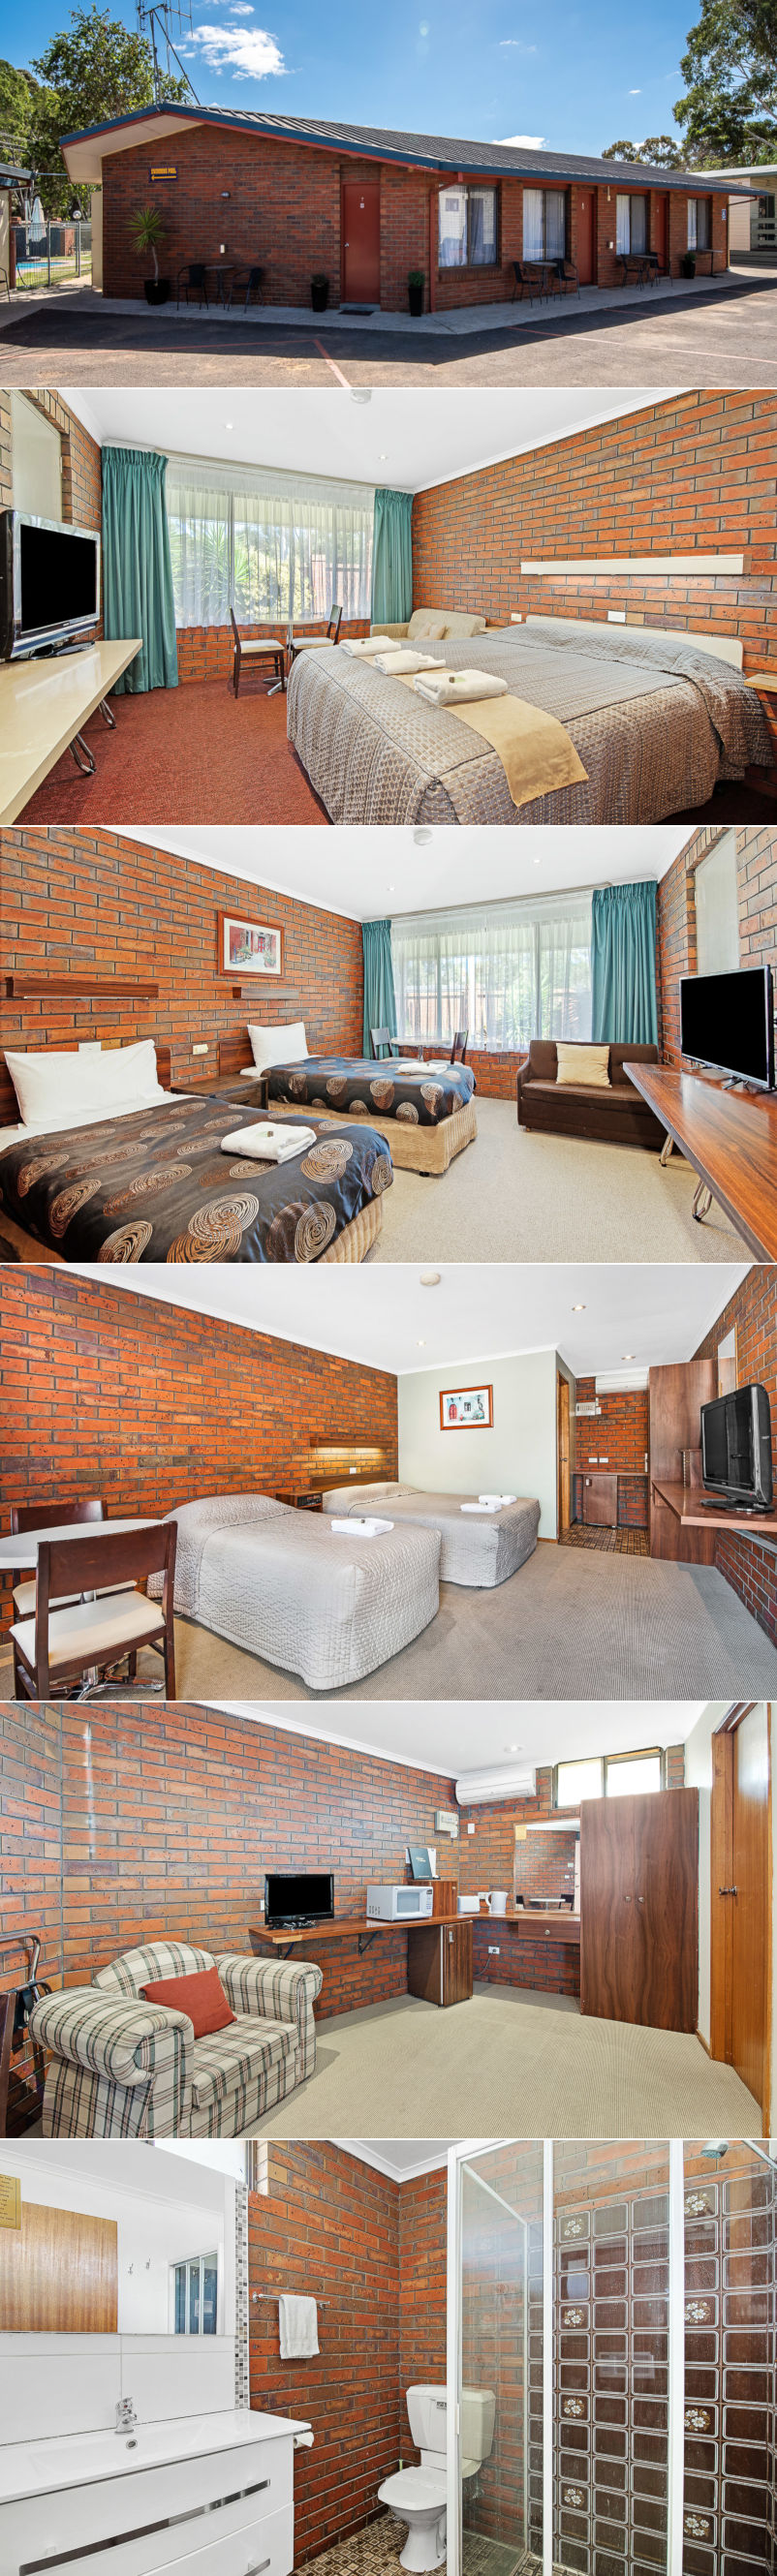 Golden Country Motel & Caravan Park - Motel rooms